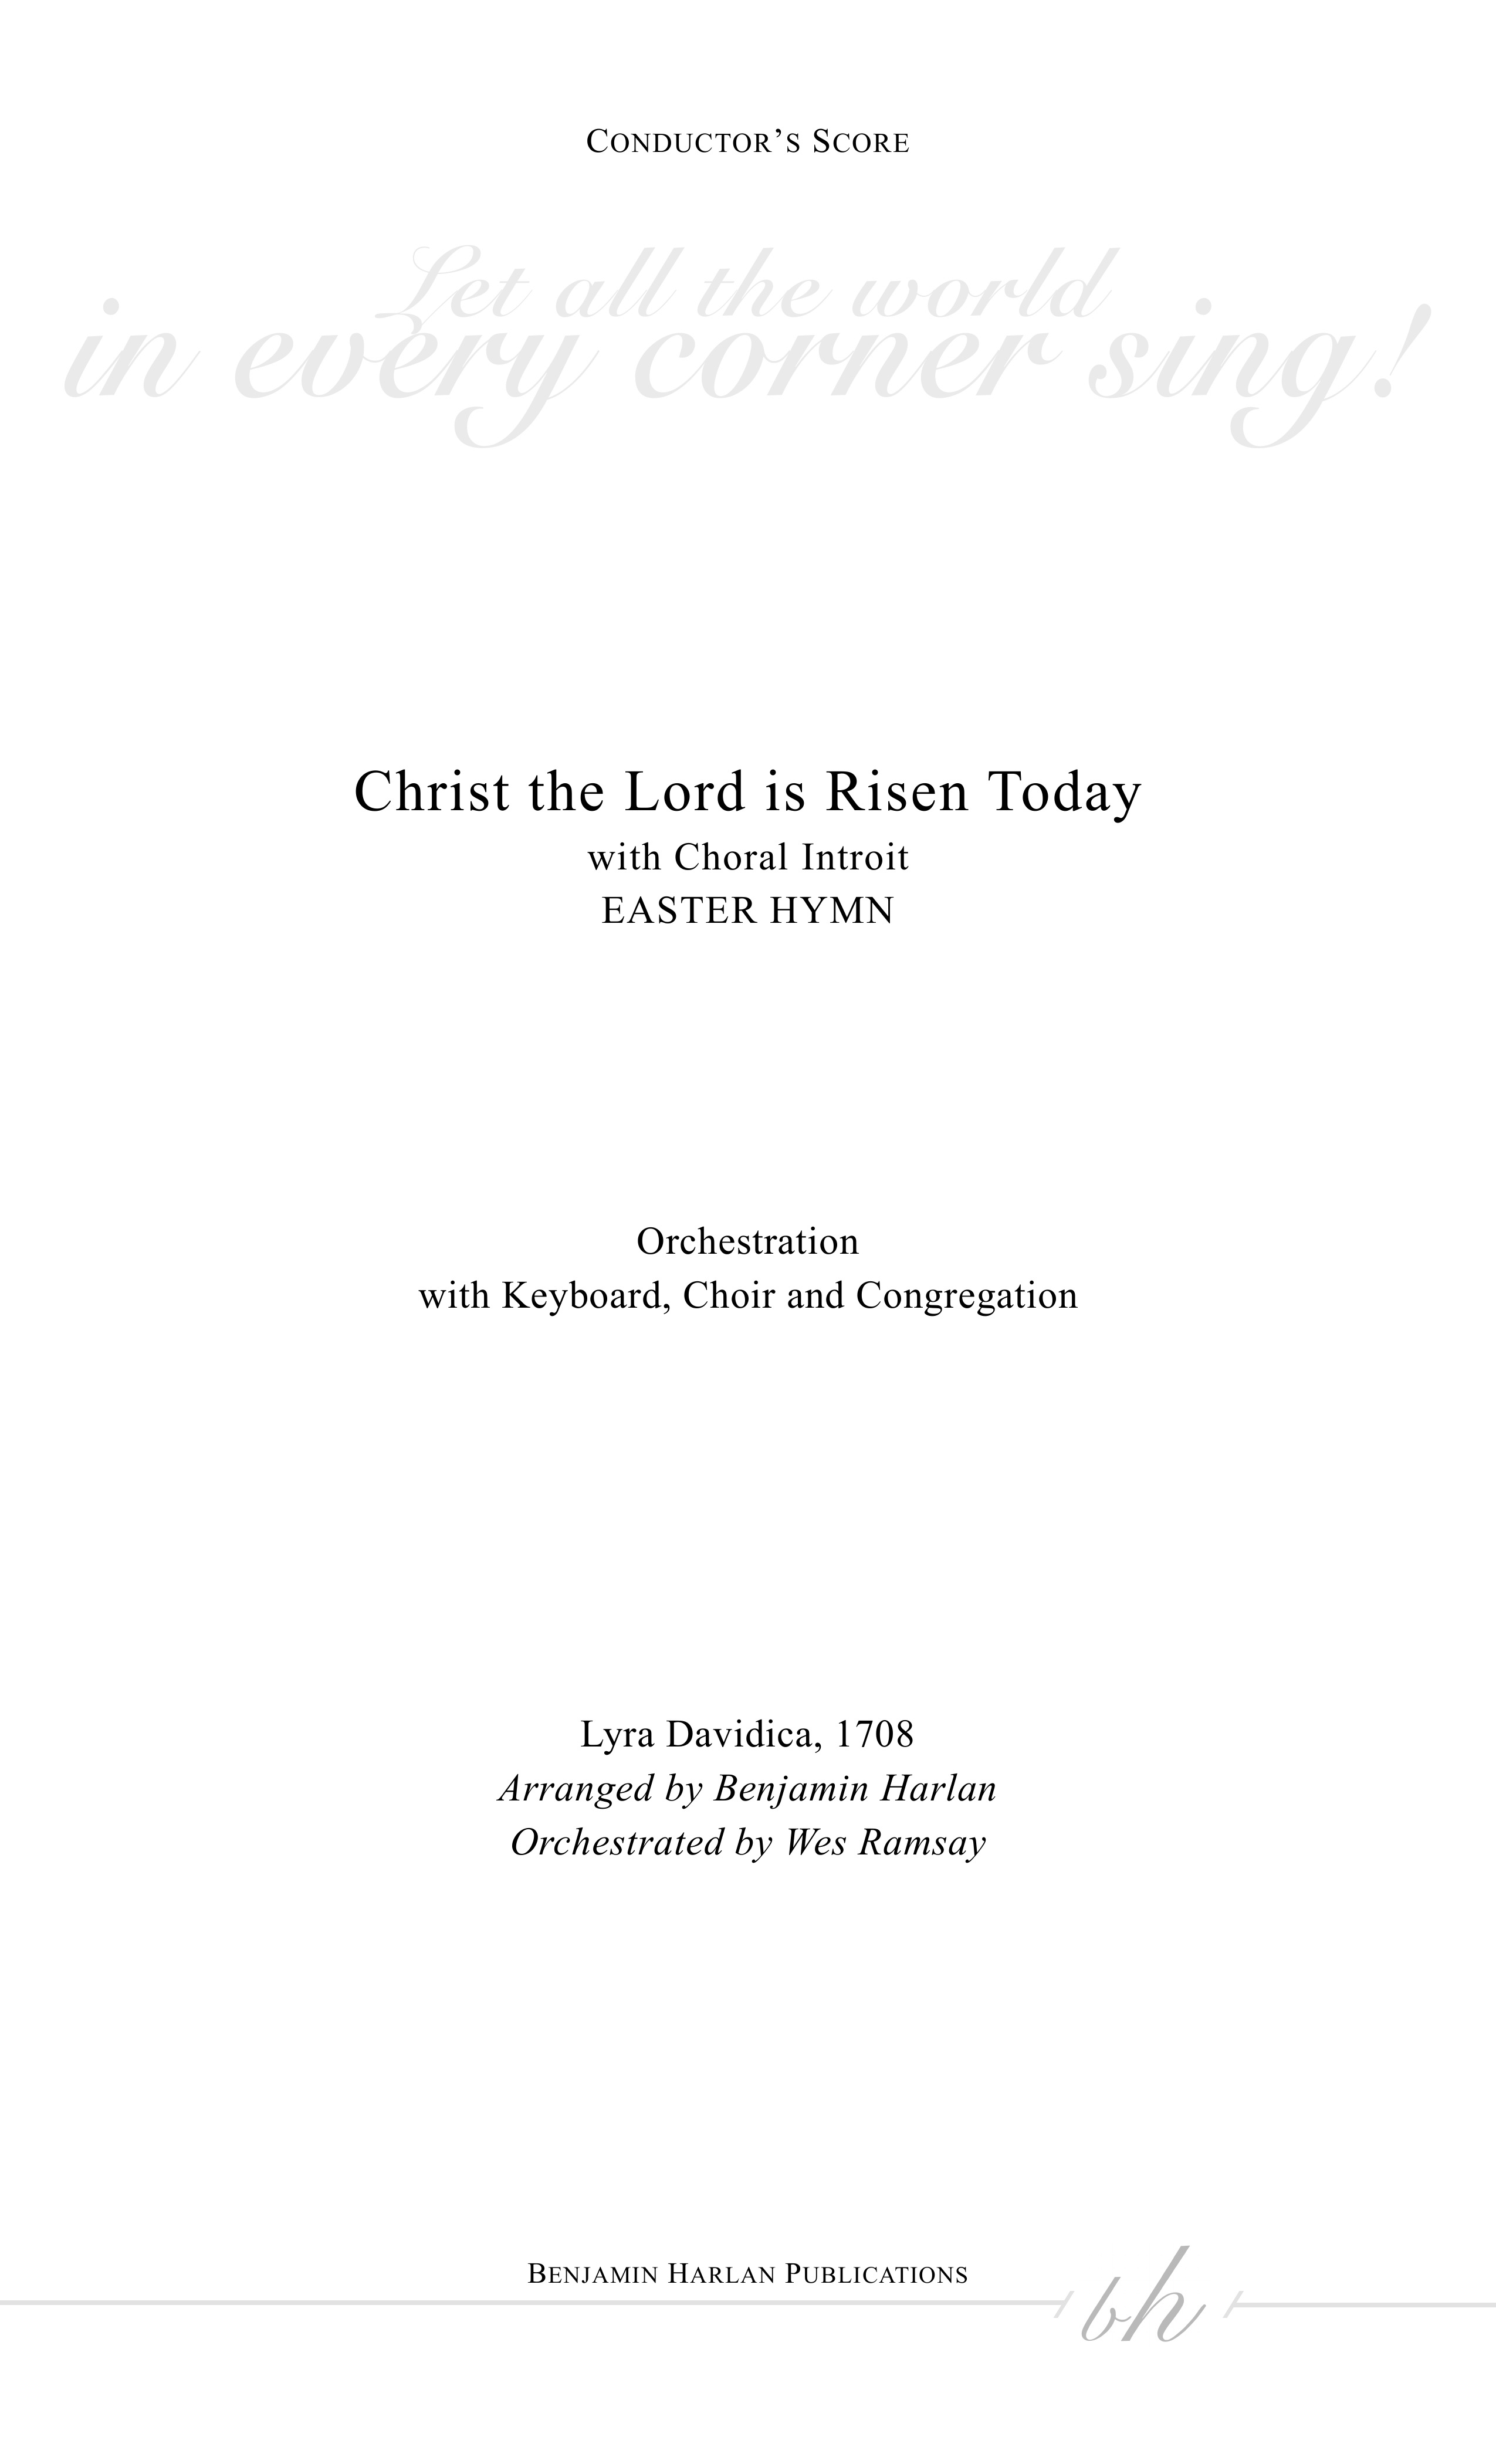 Christ the Lord is Risen Today (with Introit) ORCH